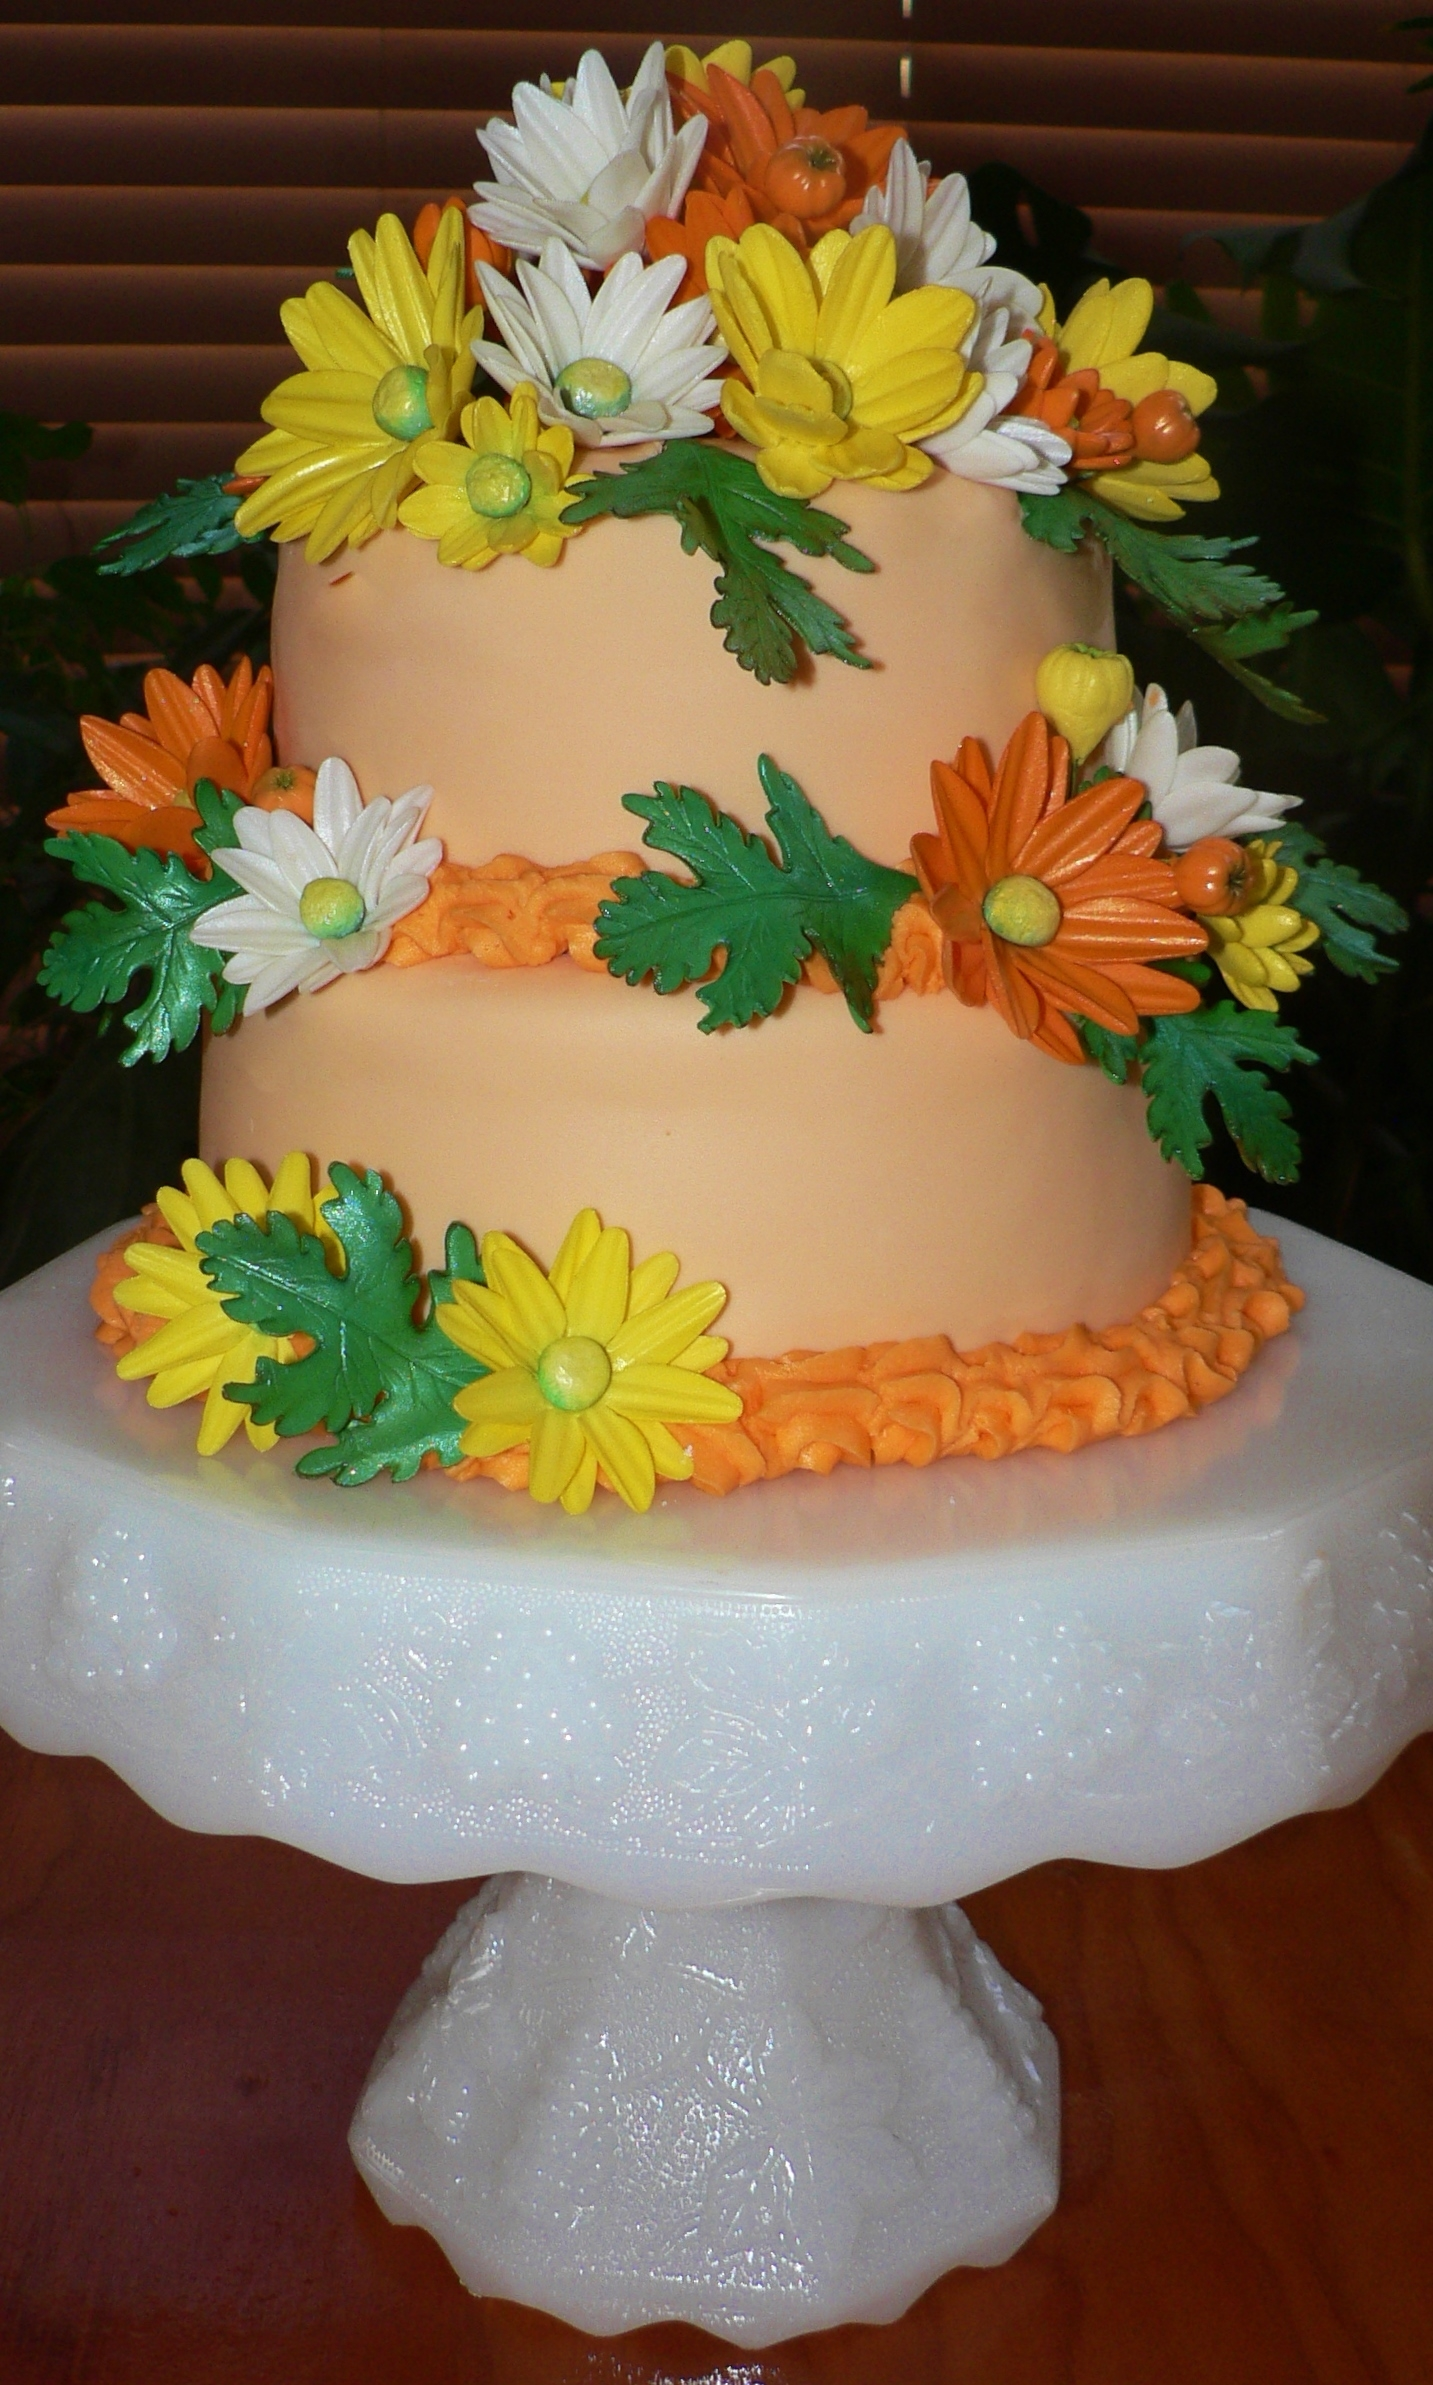 Daisy flower birthday cake cakecentral hand made edible daisies on a tiered carrot cake birthday cakes izmirmasajfo